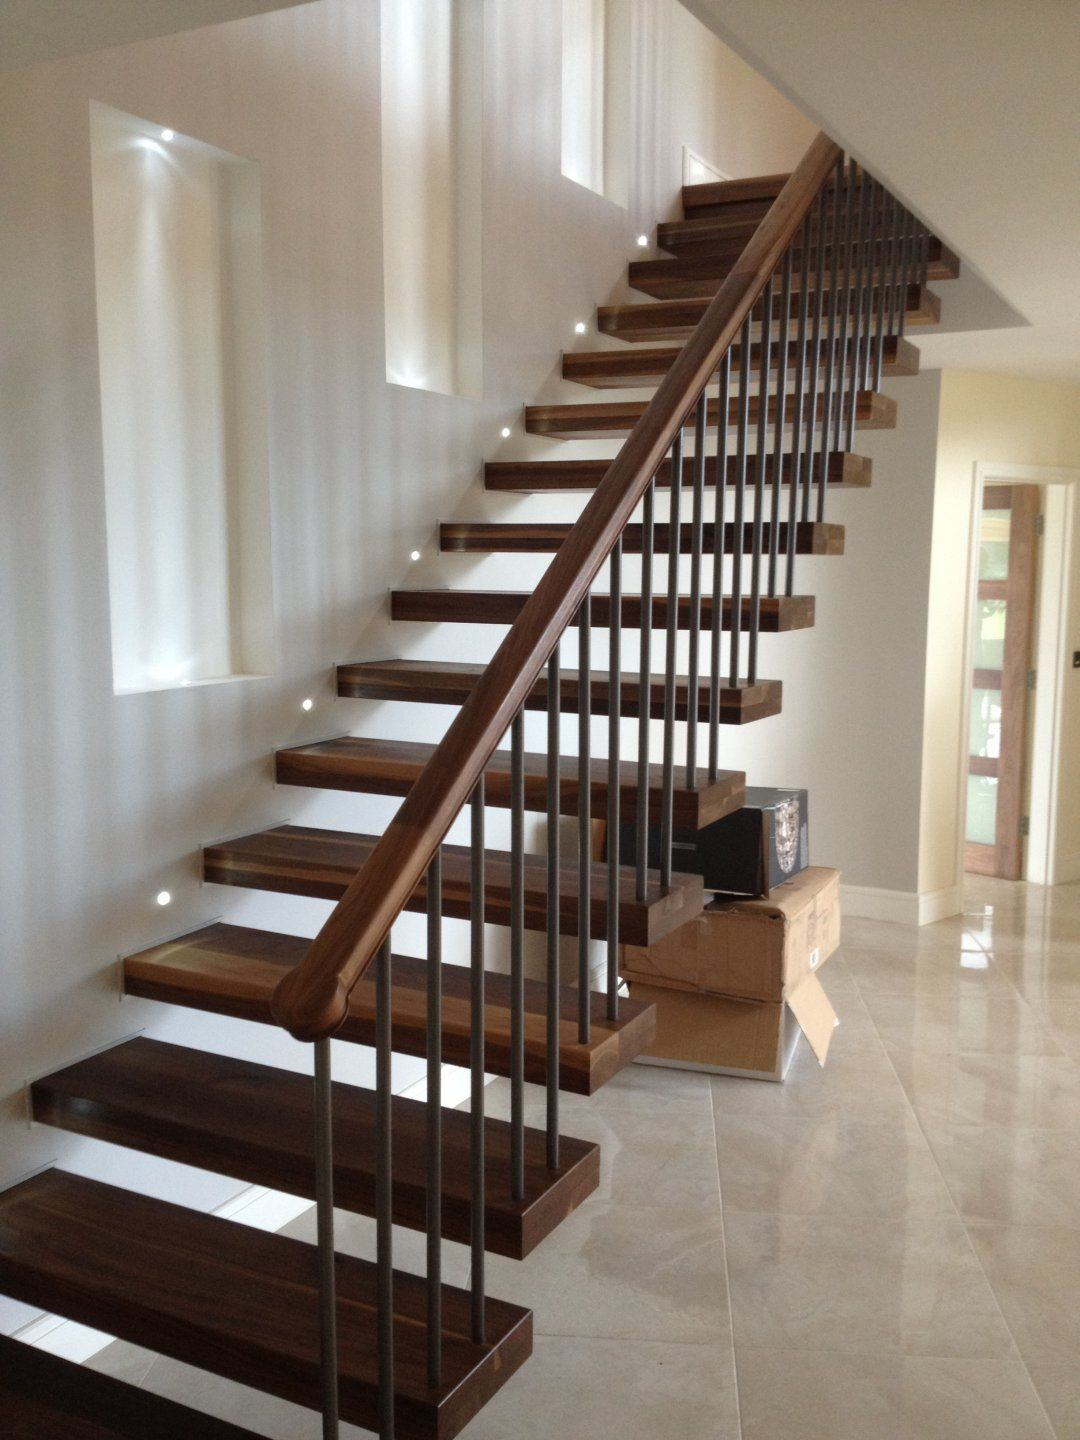 Image Result For How Much Does It Cost To Replace The Staircase | New Stair Railing Cost | Staircase Ideas | Glass Railing | Staircase Design | Stair Parts | Wooden Stairs